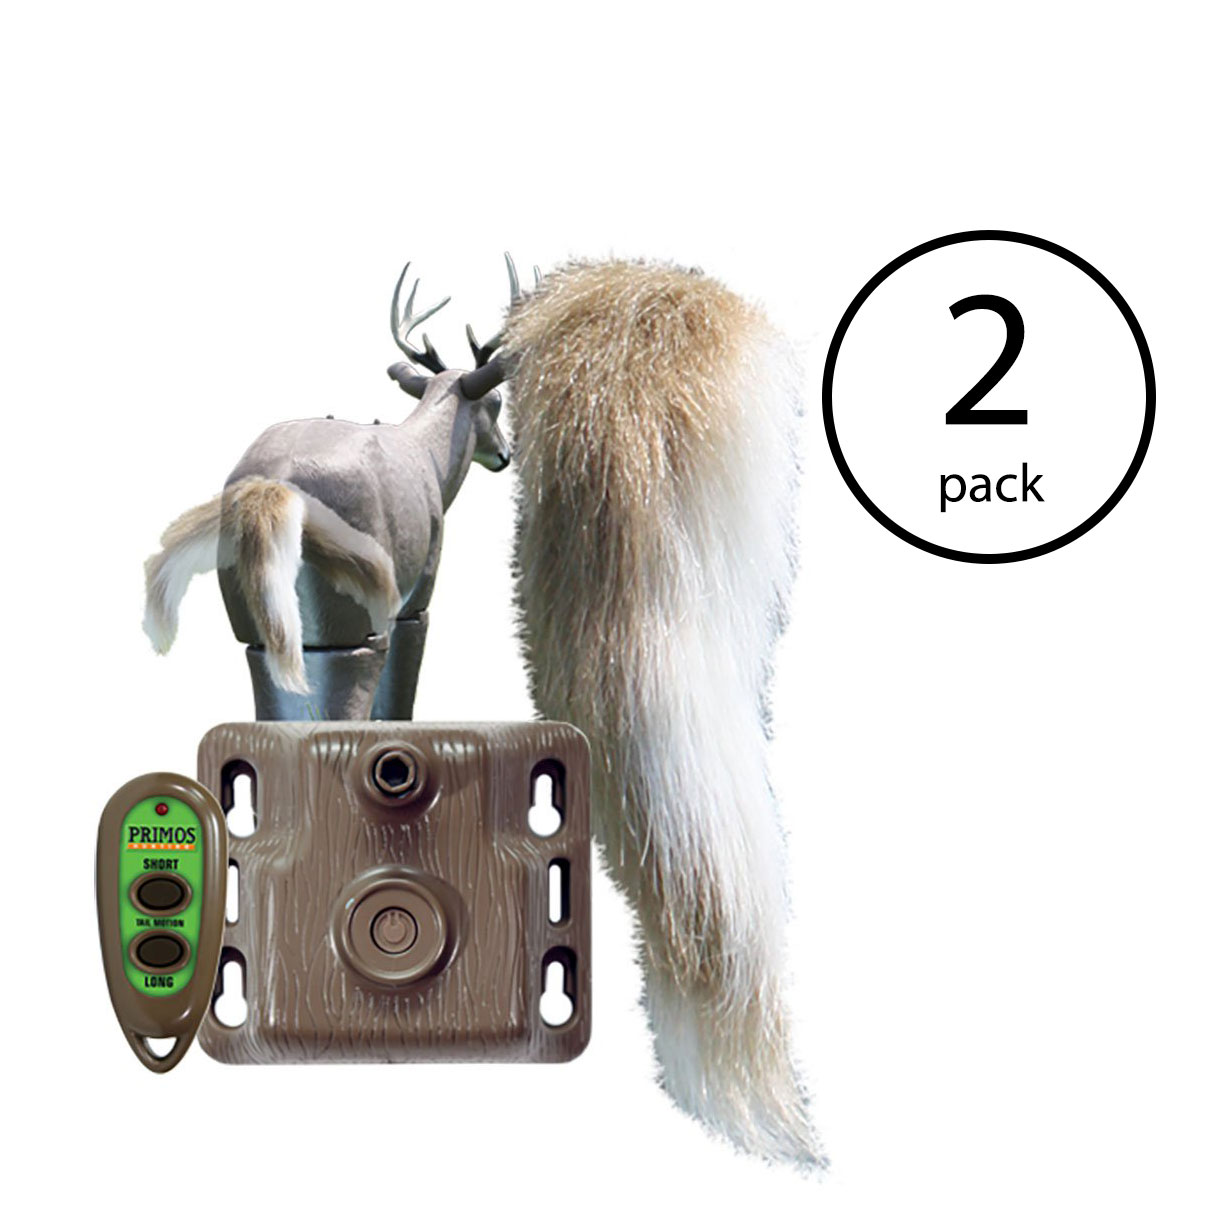 Primos Hunting Waggin' Whitetail Remote Control Motion Tail Deer Decoy (2 Pack)